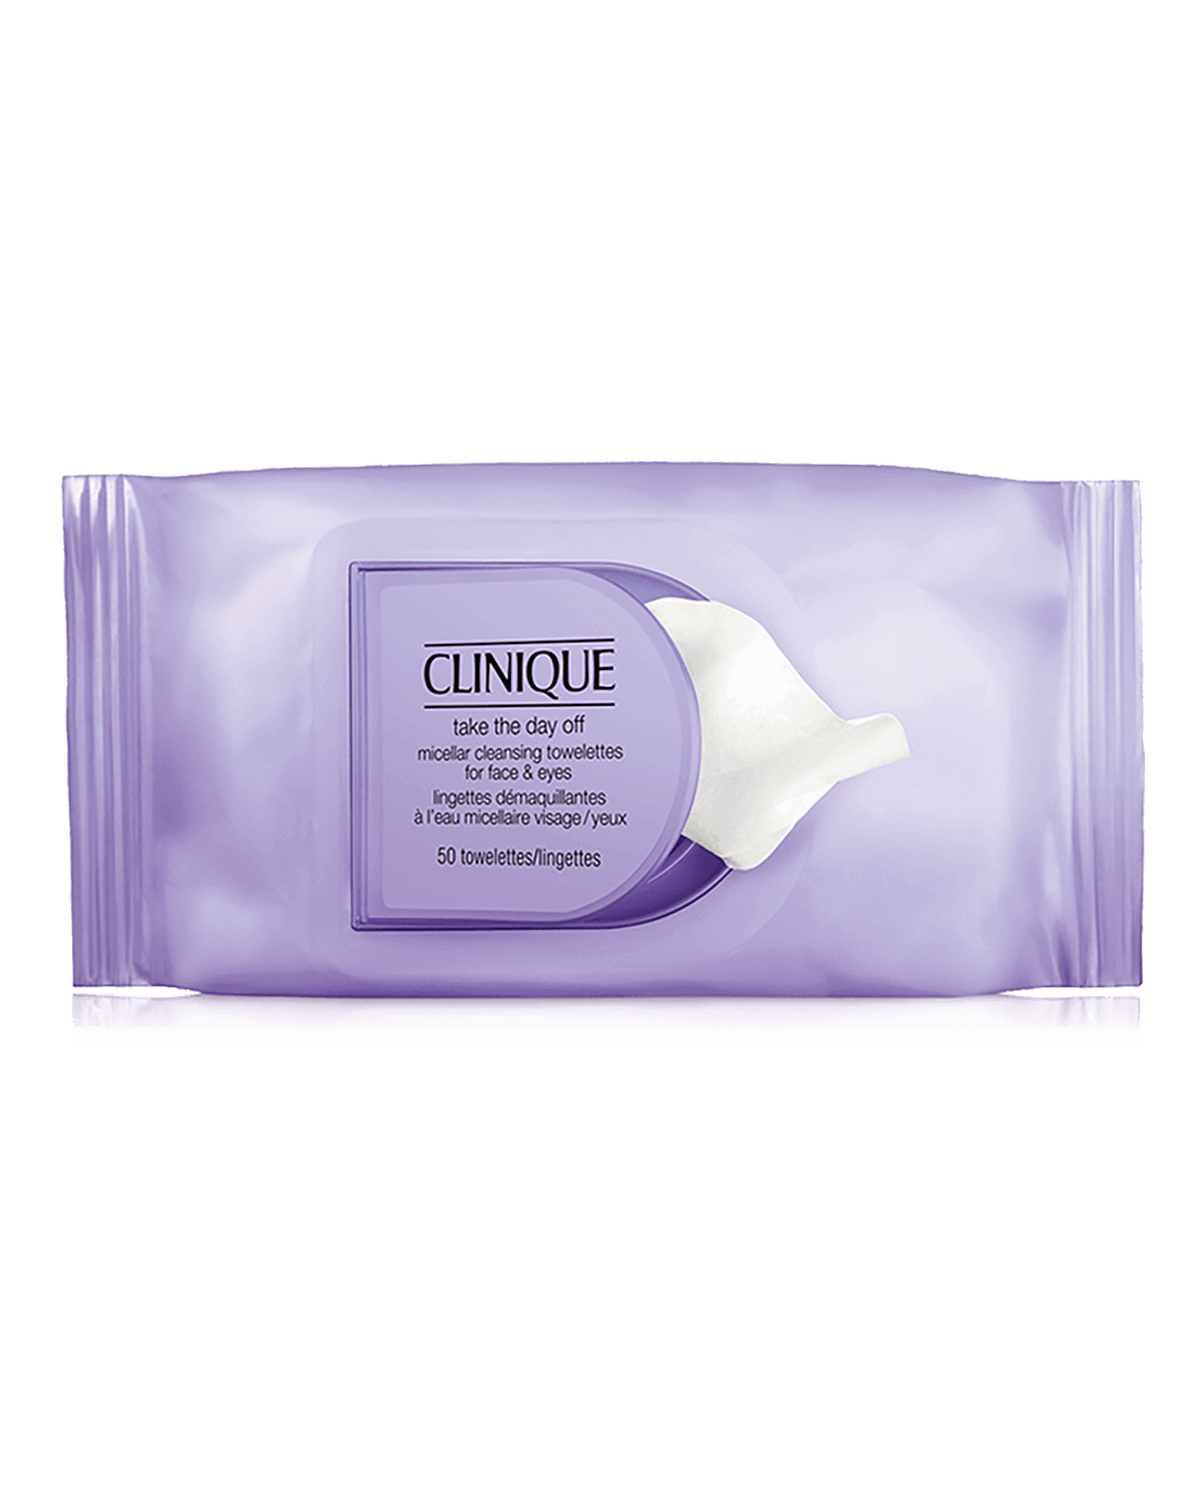 Clinique Take the Day Off™ Micellar Cleansing Towelettes for Face & Eyes